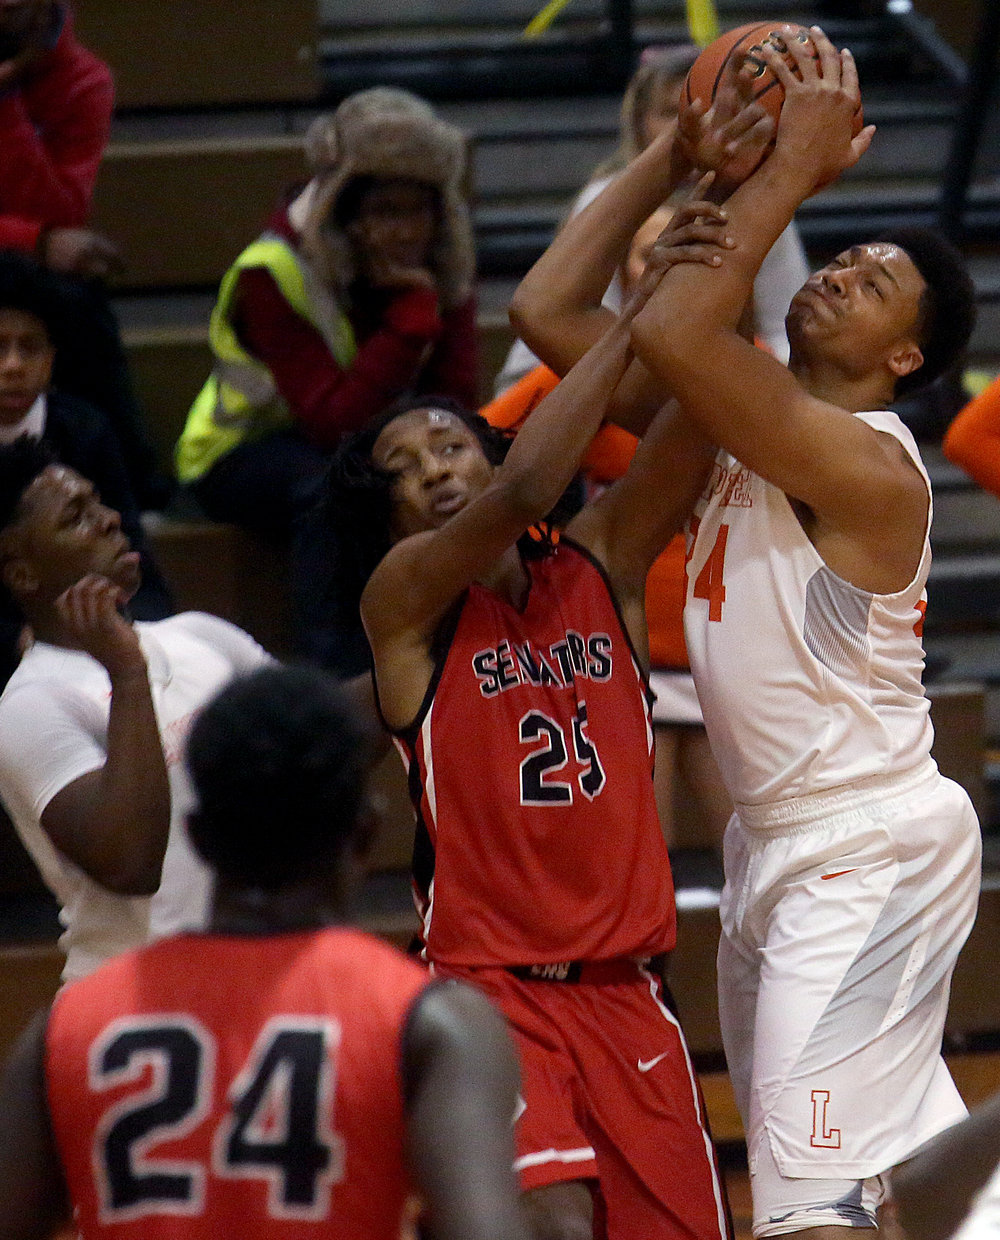 Lanphier's Davon Higgerson-Harris grabs the rebound while Senators player Marquiss Johnson defends. David Spencer/The State Journal Register